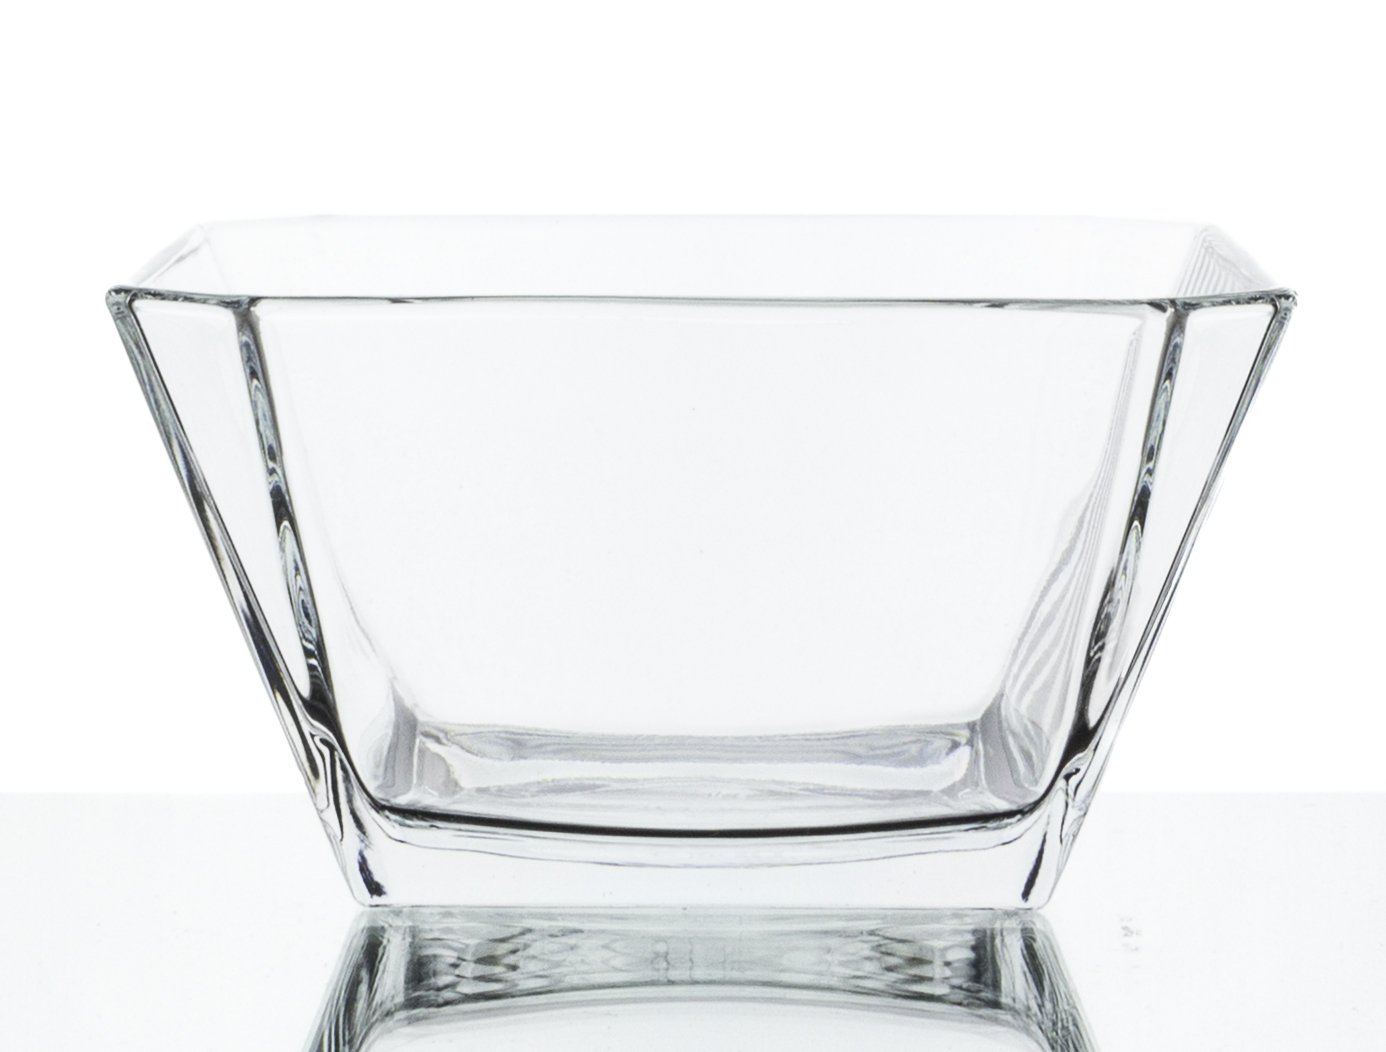 London Clear Glass Mini Dip/Dessert Bowls - Set of 6, 10 Ounce Red Co. 4521